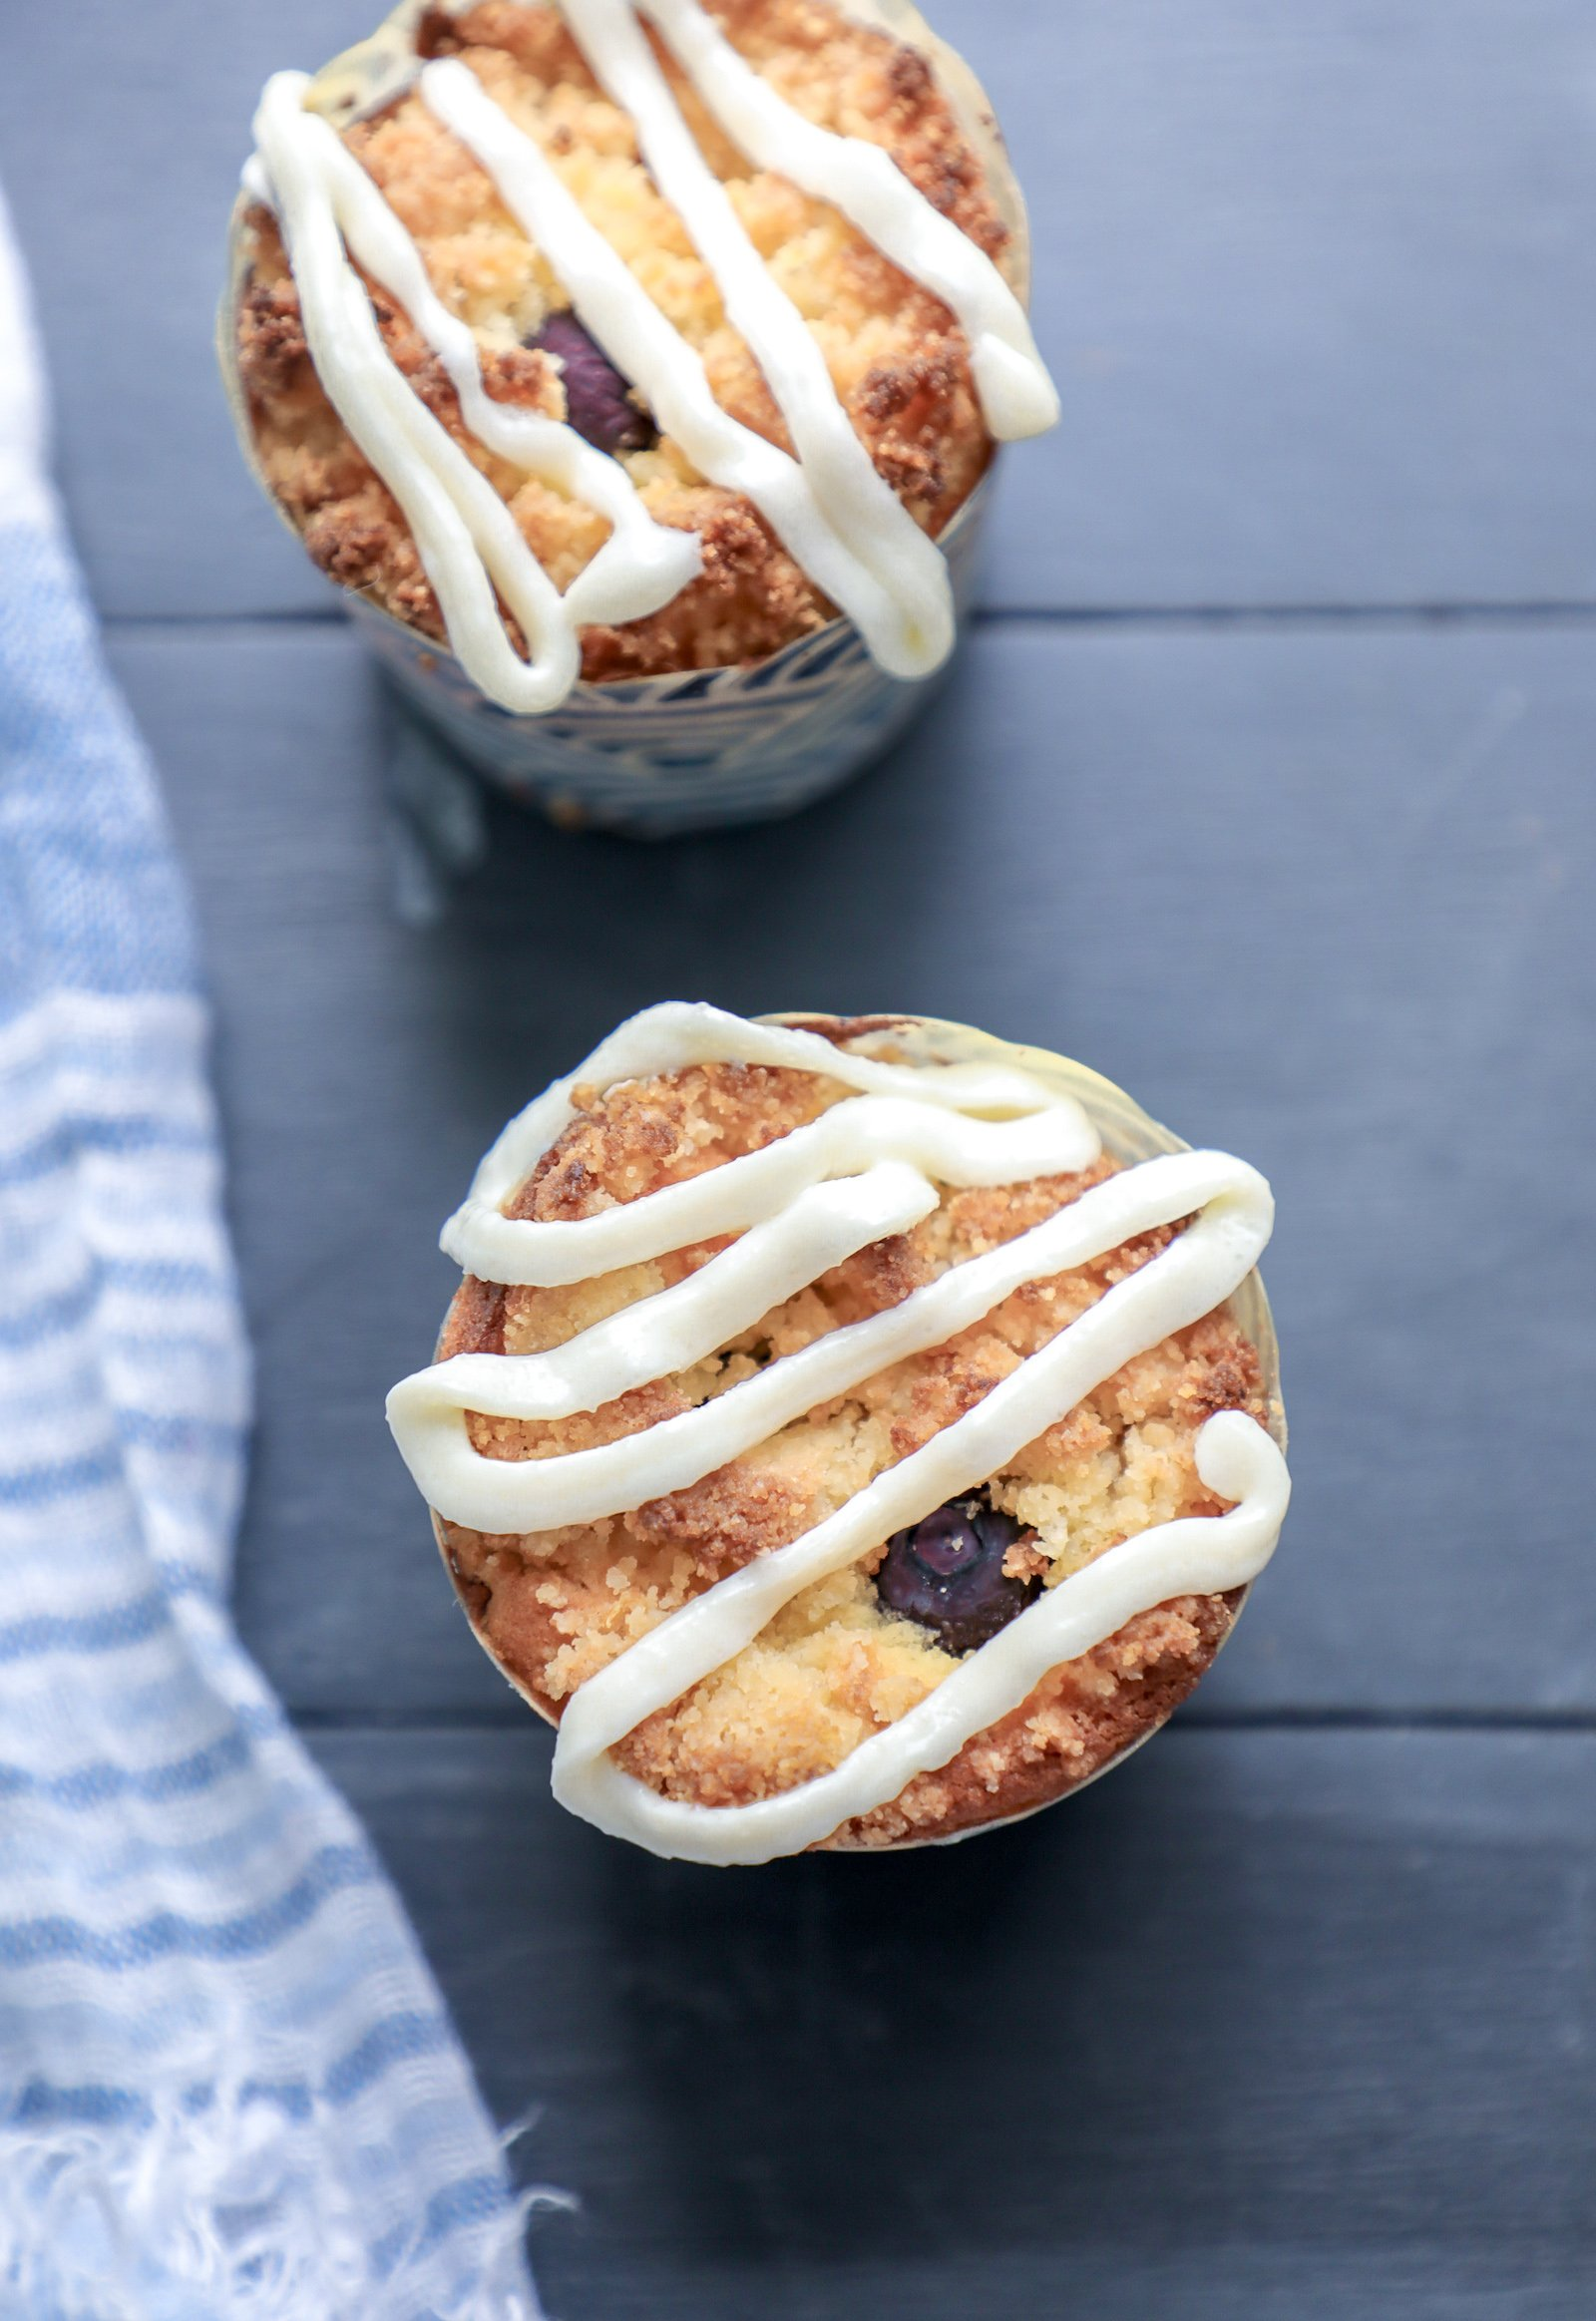 Top view of keto blueberry muffins with lemon icing